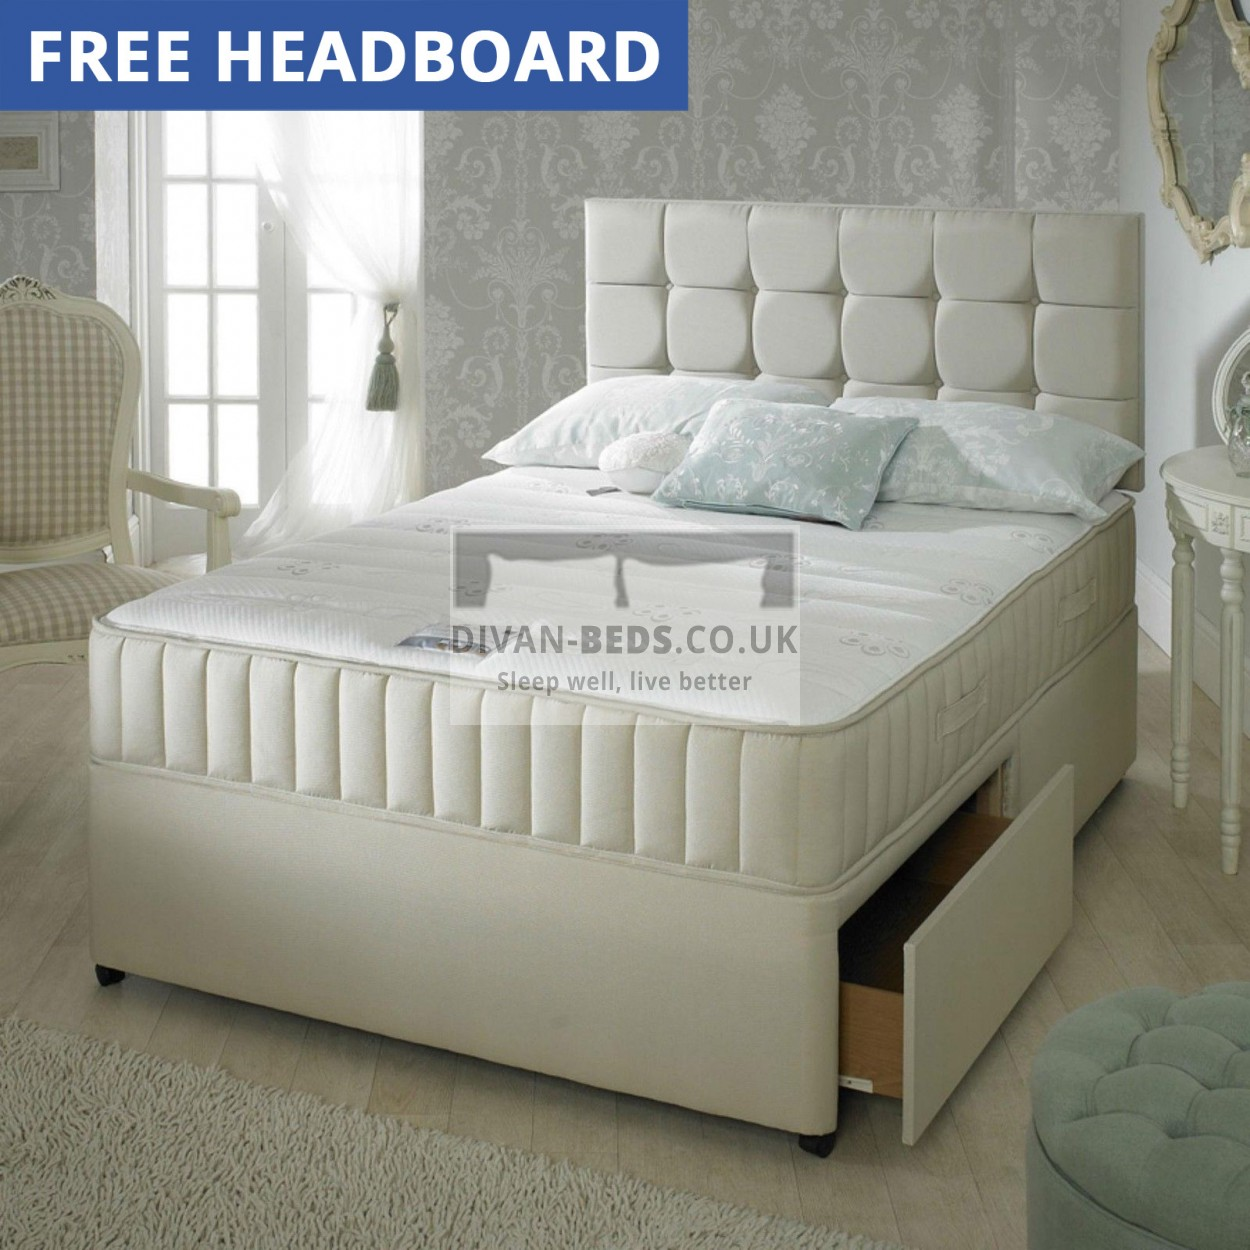 Carlton leather divan bed with 1500 pocket spring memory for Memory foam divan bed